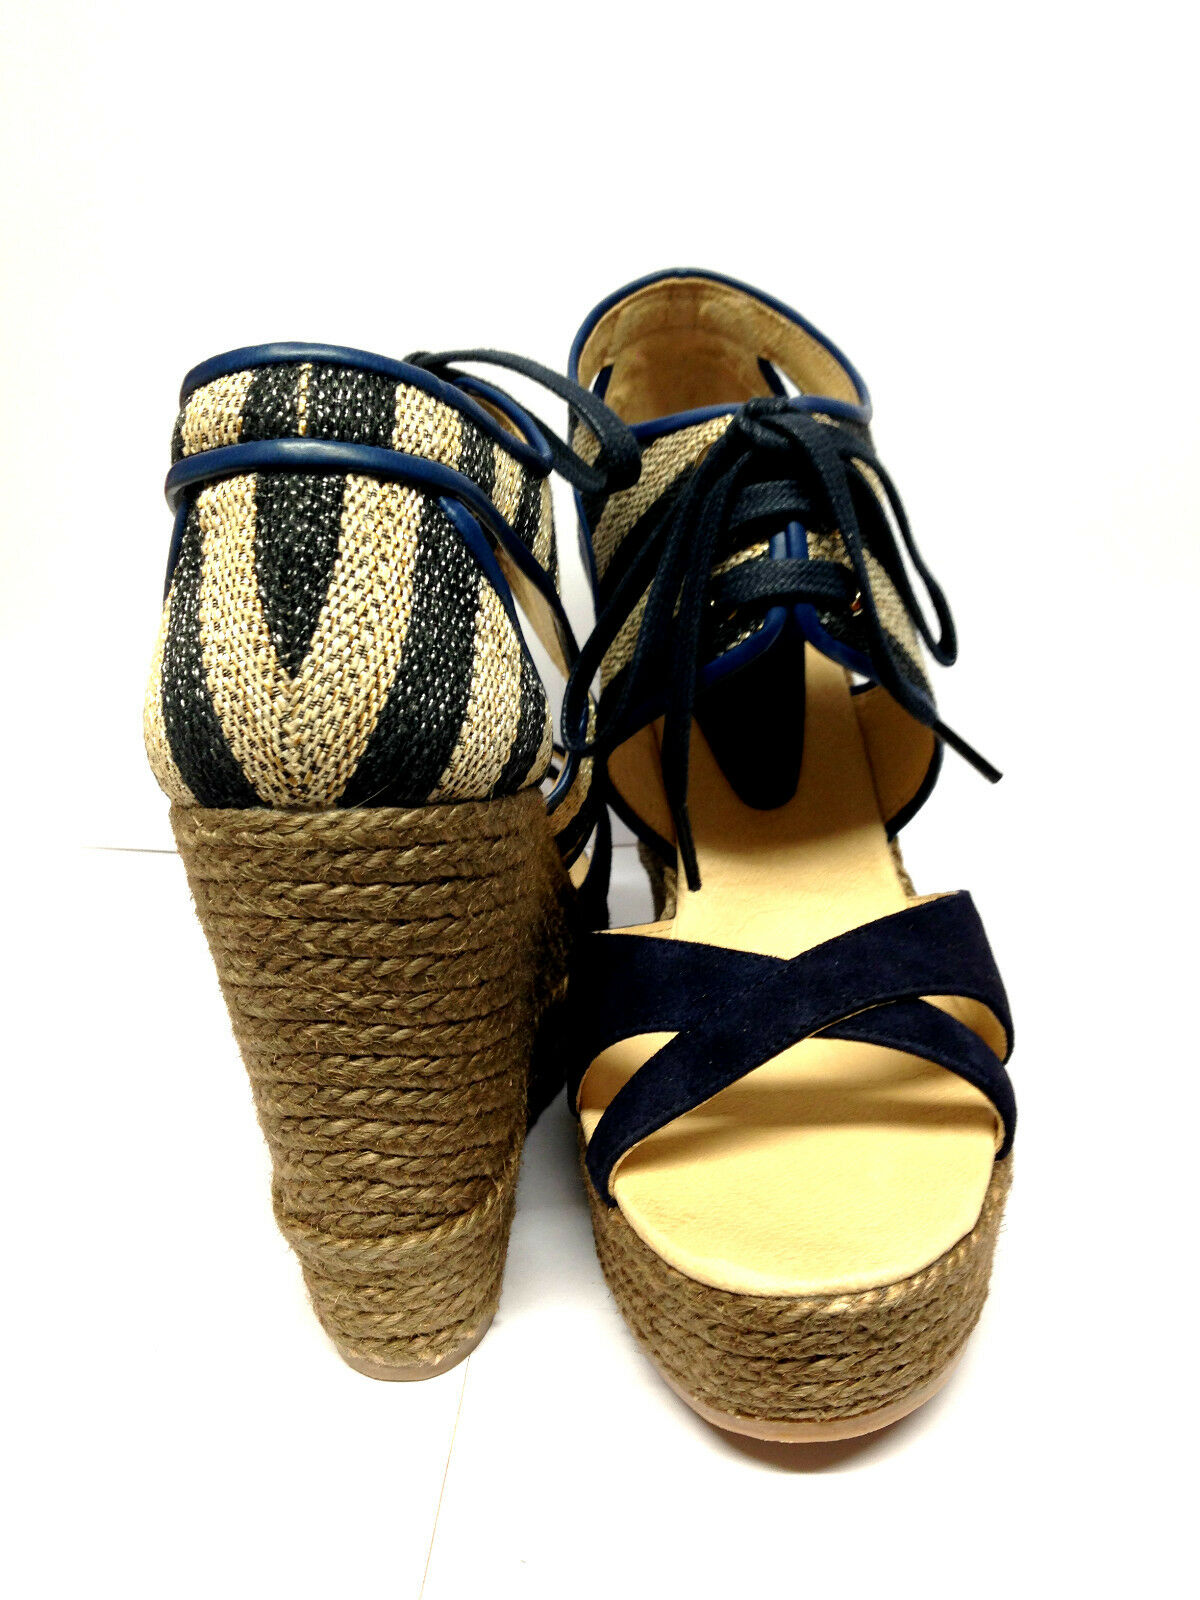 SOMERSET BY ALICE SIZE TEMPERLEY -WISTERIA LACE-UP WEDGE/HEELS- SIZE ALICE 5 - NAVY  BB232 9a6e84